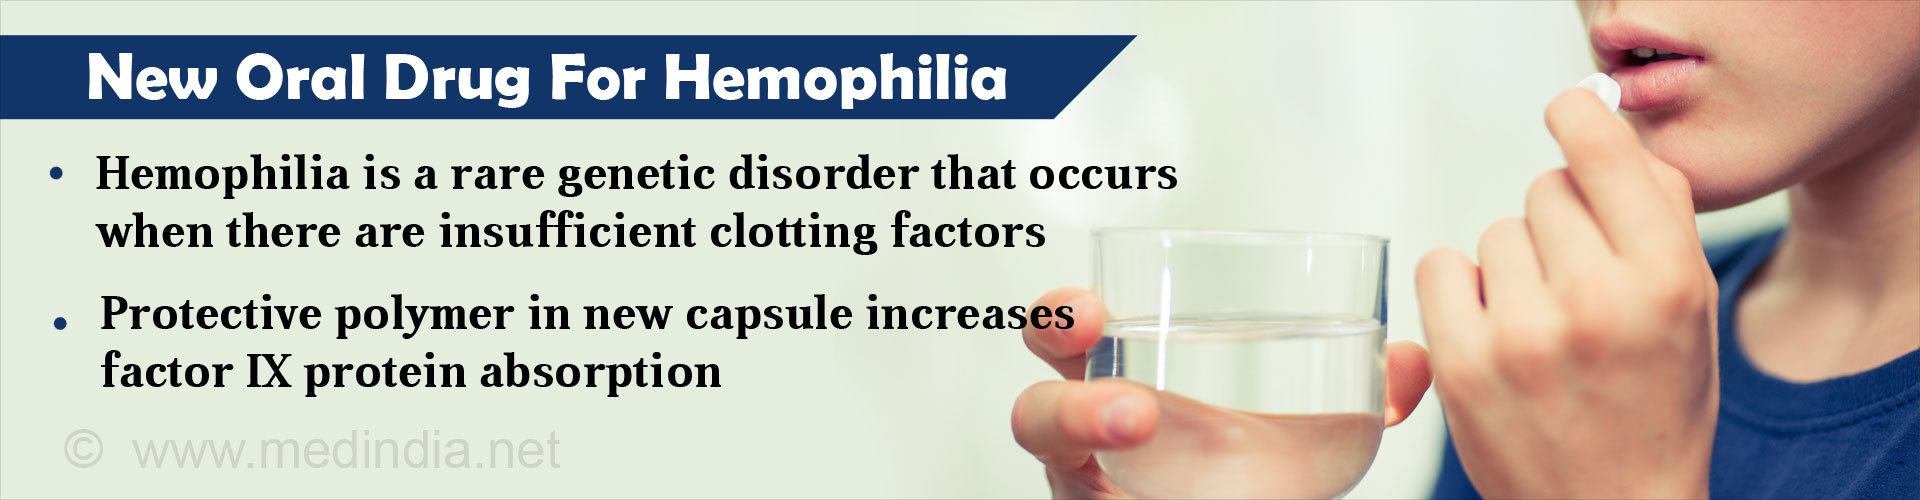 Oral Pill Shows New Hope For Hemophilia Treatment